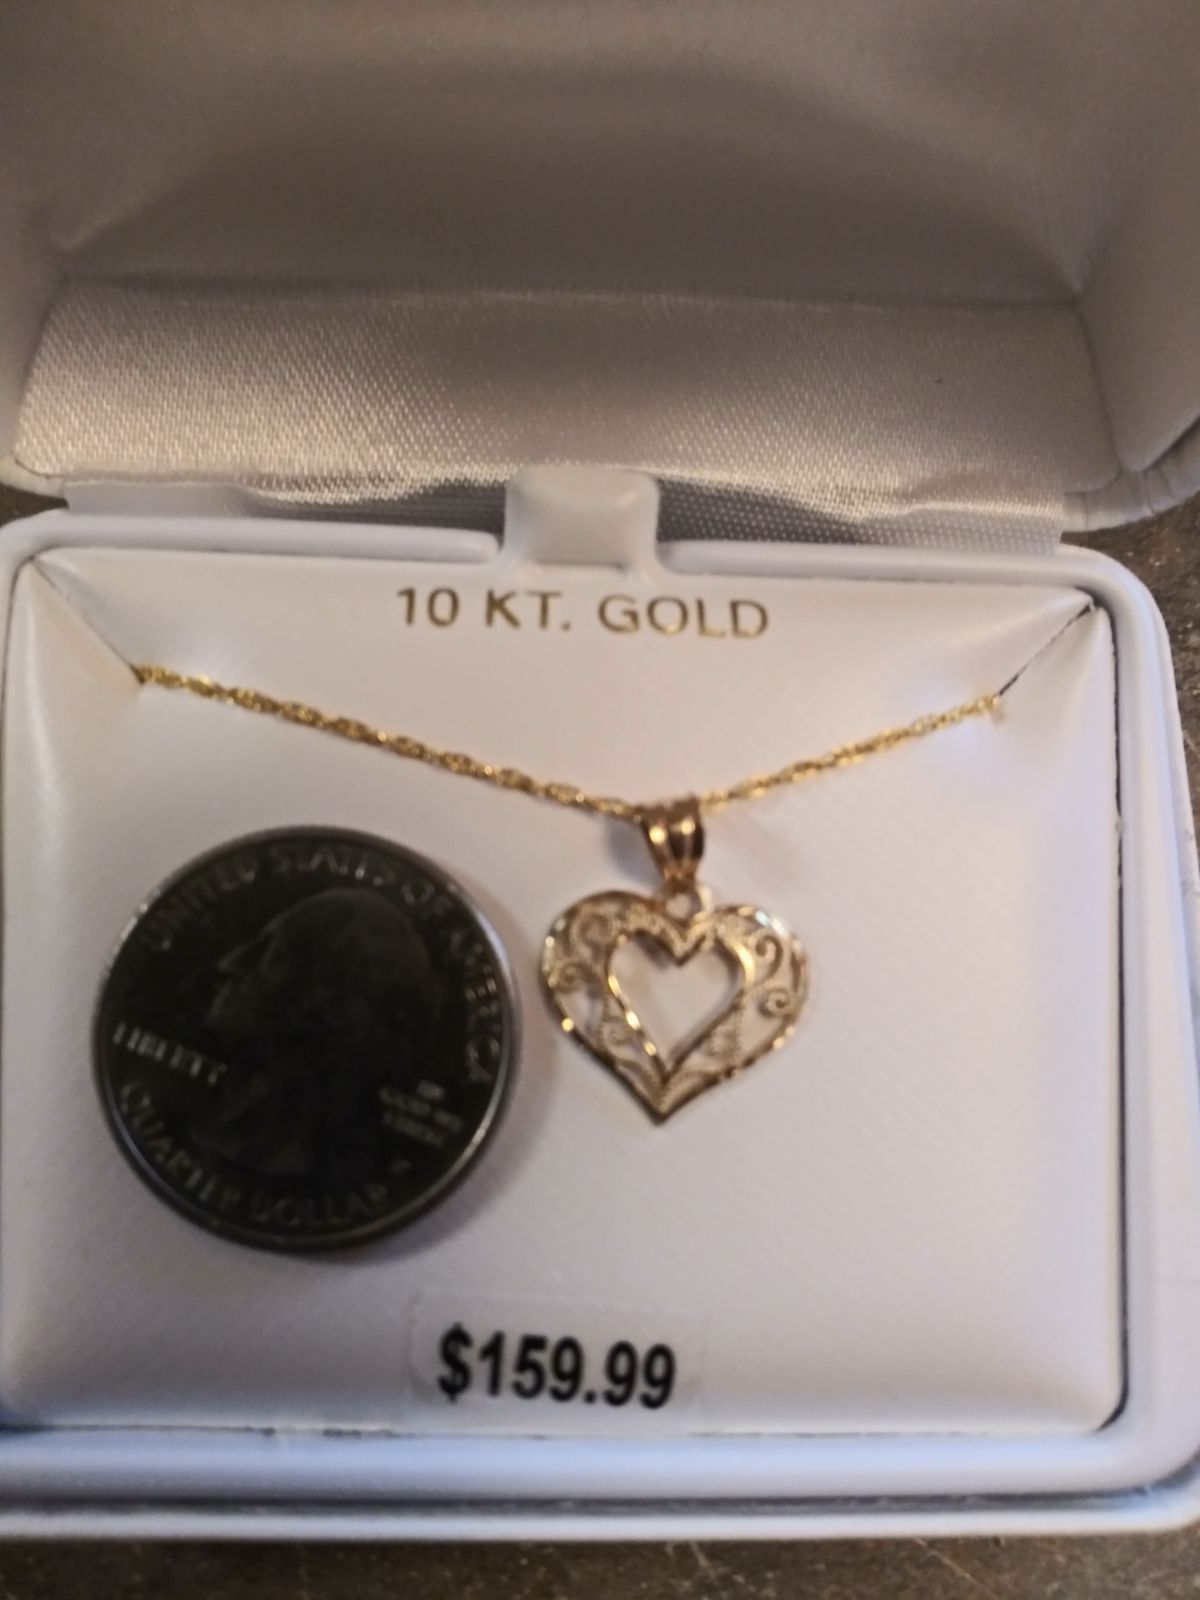 New 10kt Gold Heart Pendant With 14kt Gold Filled Chain Retail Price Is 159 Plus Tax Heart Pendant Gold 10kt Gold Gold Filled Chain